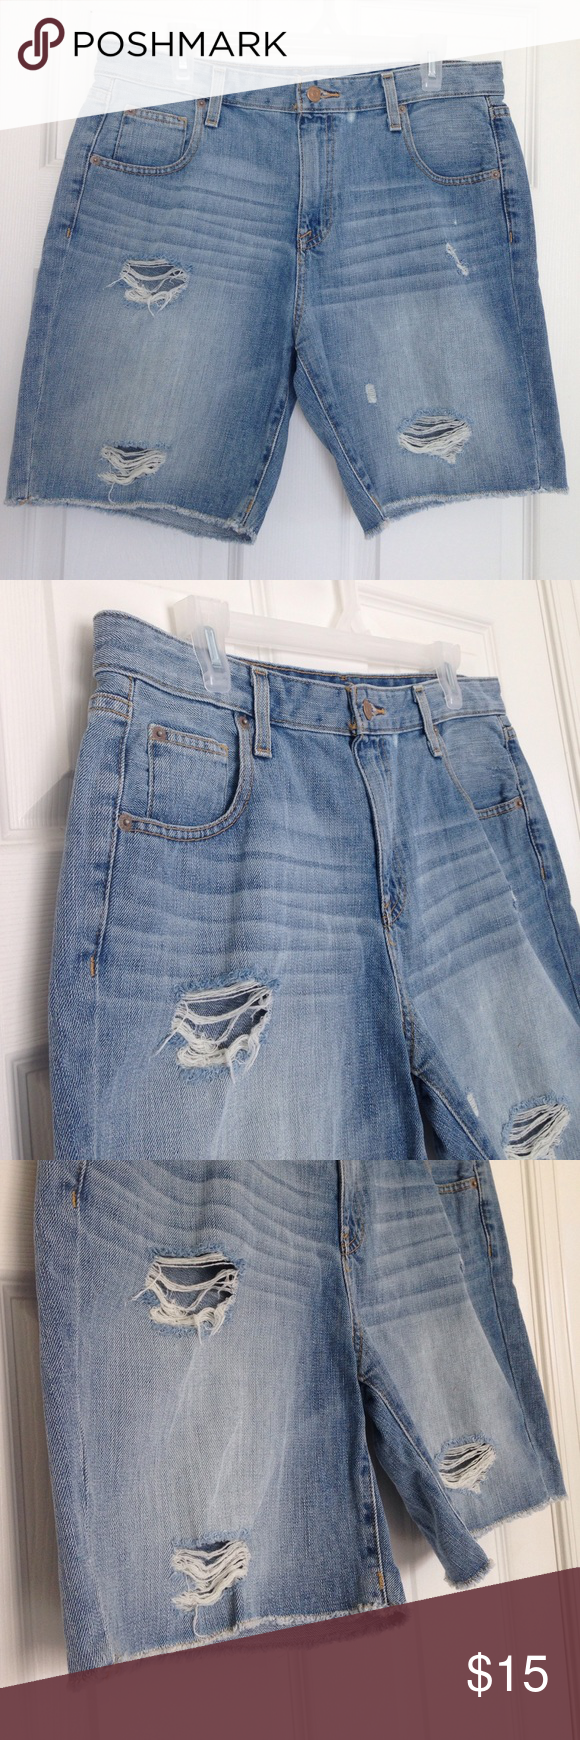 """Distressed Denim Boyfriend Short 100% cotton. Distressed as style. Pockets. Relaxed fit. Measurement laying flat: waist: 17.5"""" inseam: 8"""" length: 18"""". No stains or holes. Mossimo Supply Co. Shorts"""